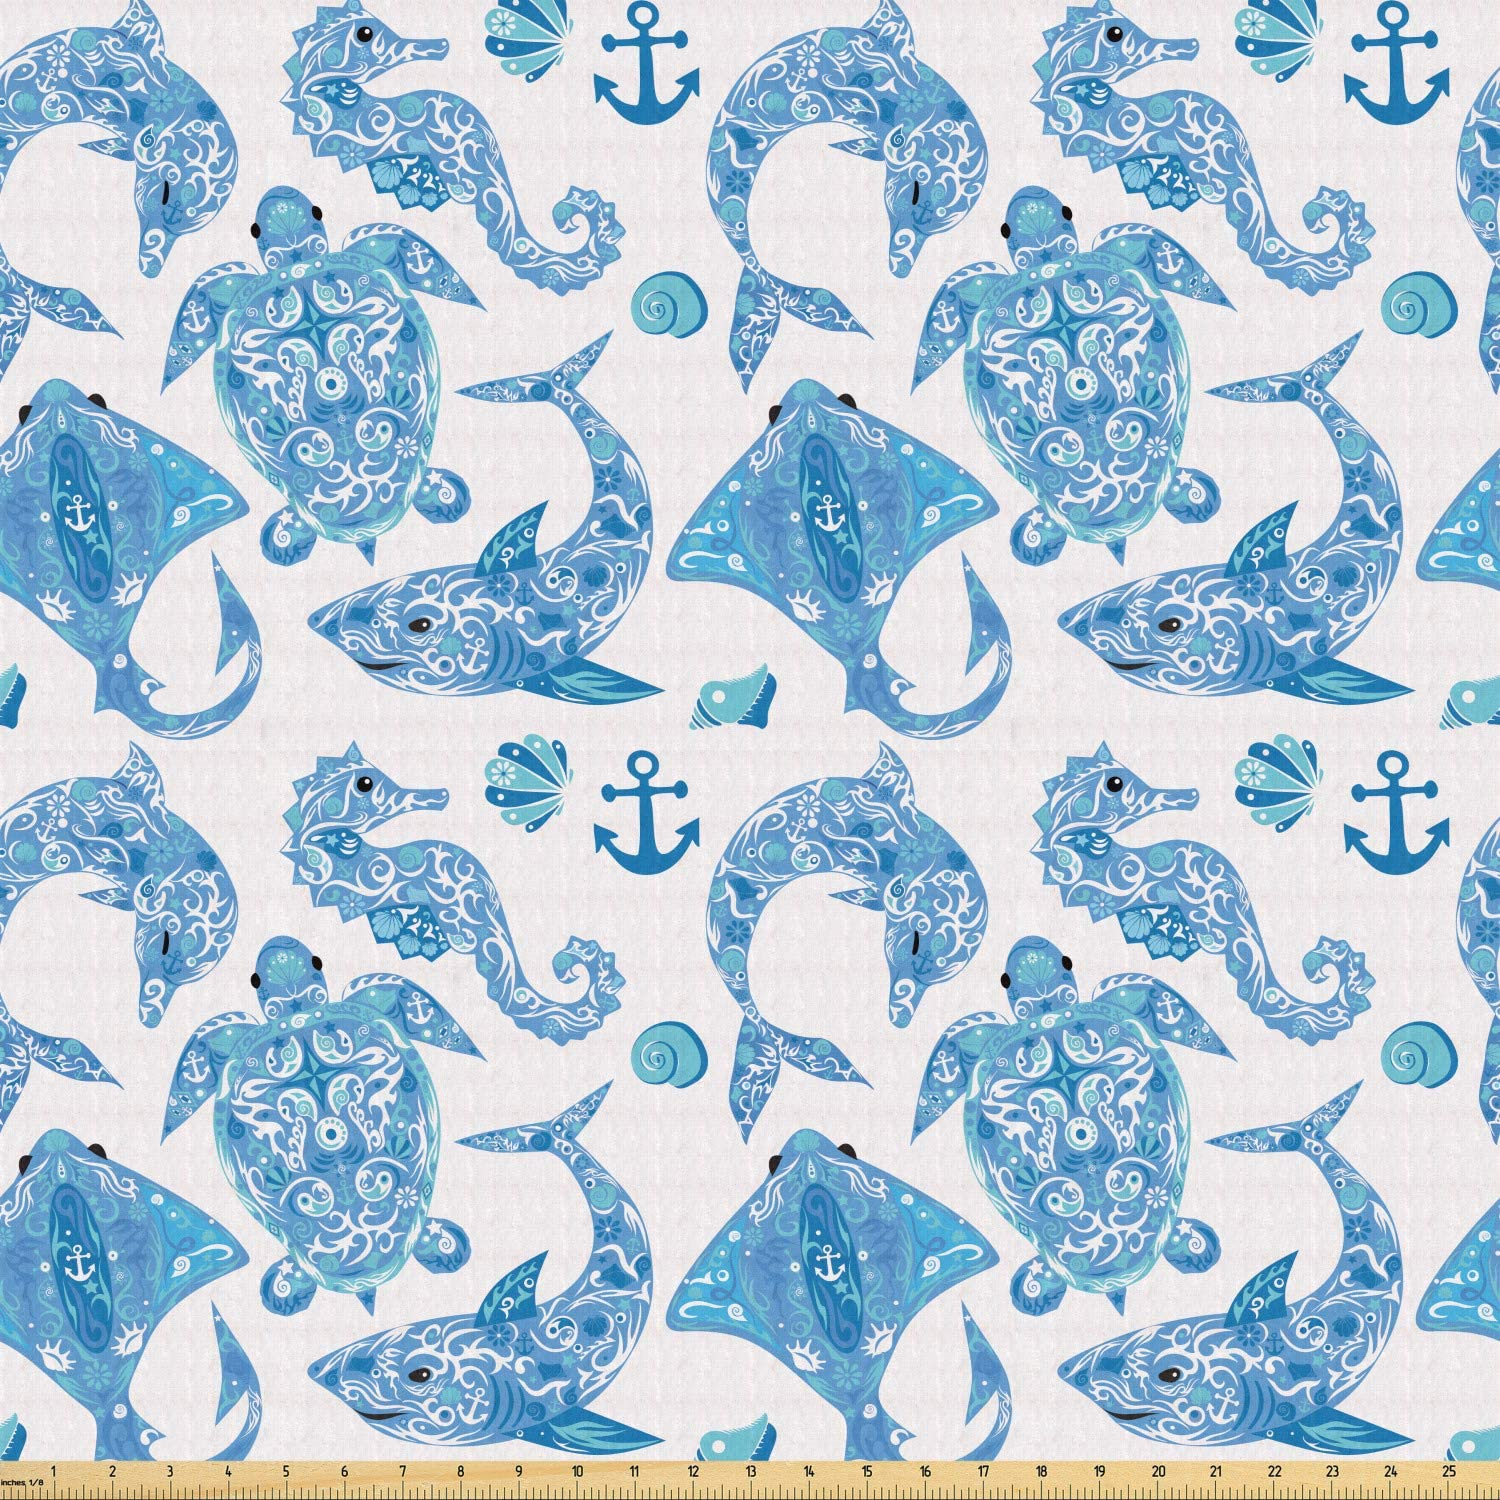 Lunarable Anchor Fabric by The Yard, Pattern with Turtle Dolphin Sea Horse Mollusk Shark Fauna Exotic Tropical Aquatic, Stretch Knit Fabric for Clothing Sewing and Arts Crafts, 1 Yard, Sky Blue